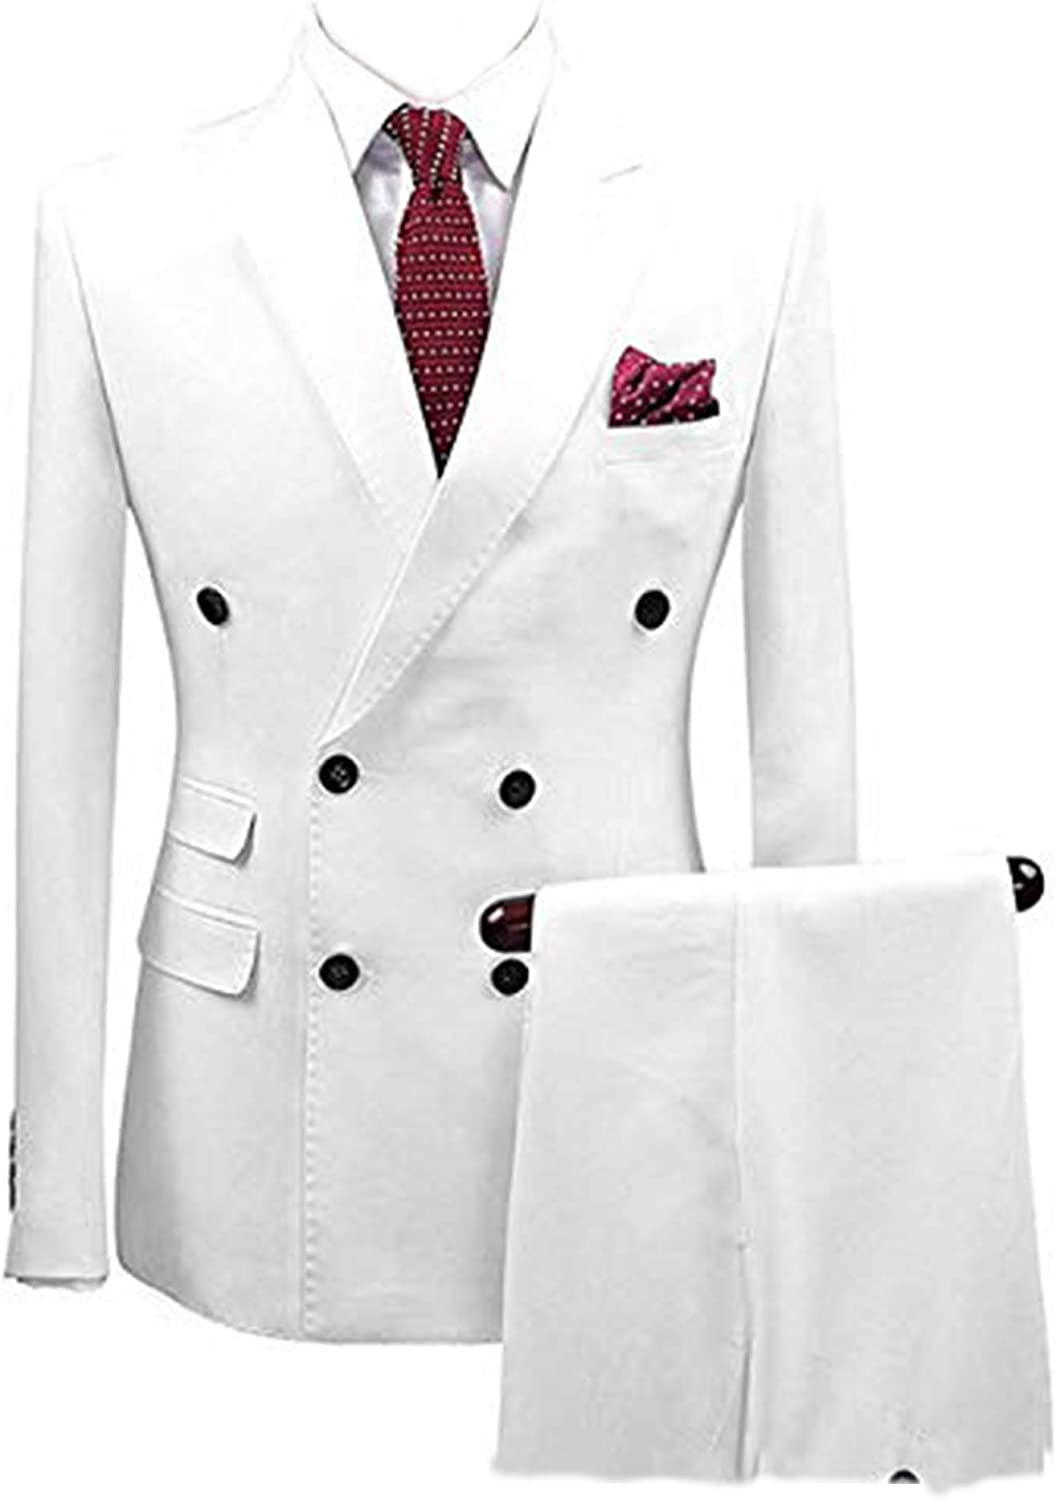 Fitty Lell Men's Wedding Suits Double-Breasted Blazer Business Street Suit Jackets Groomsmen 2 Pieces